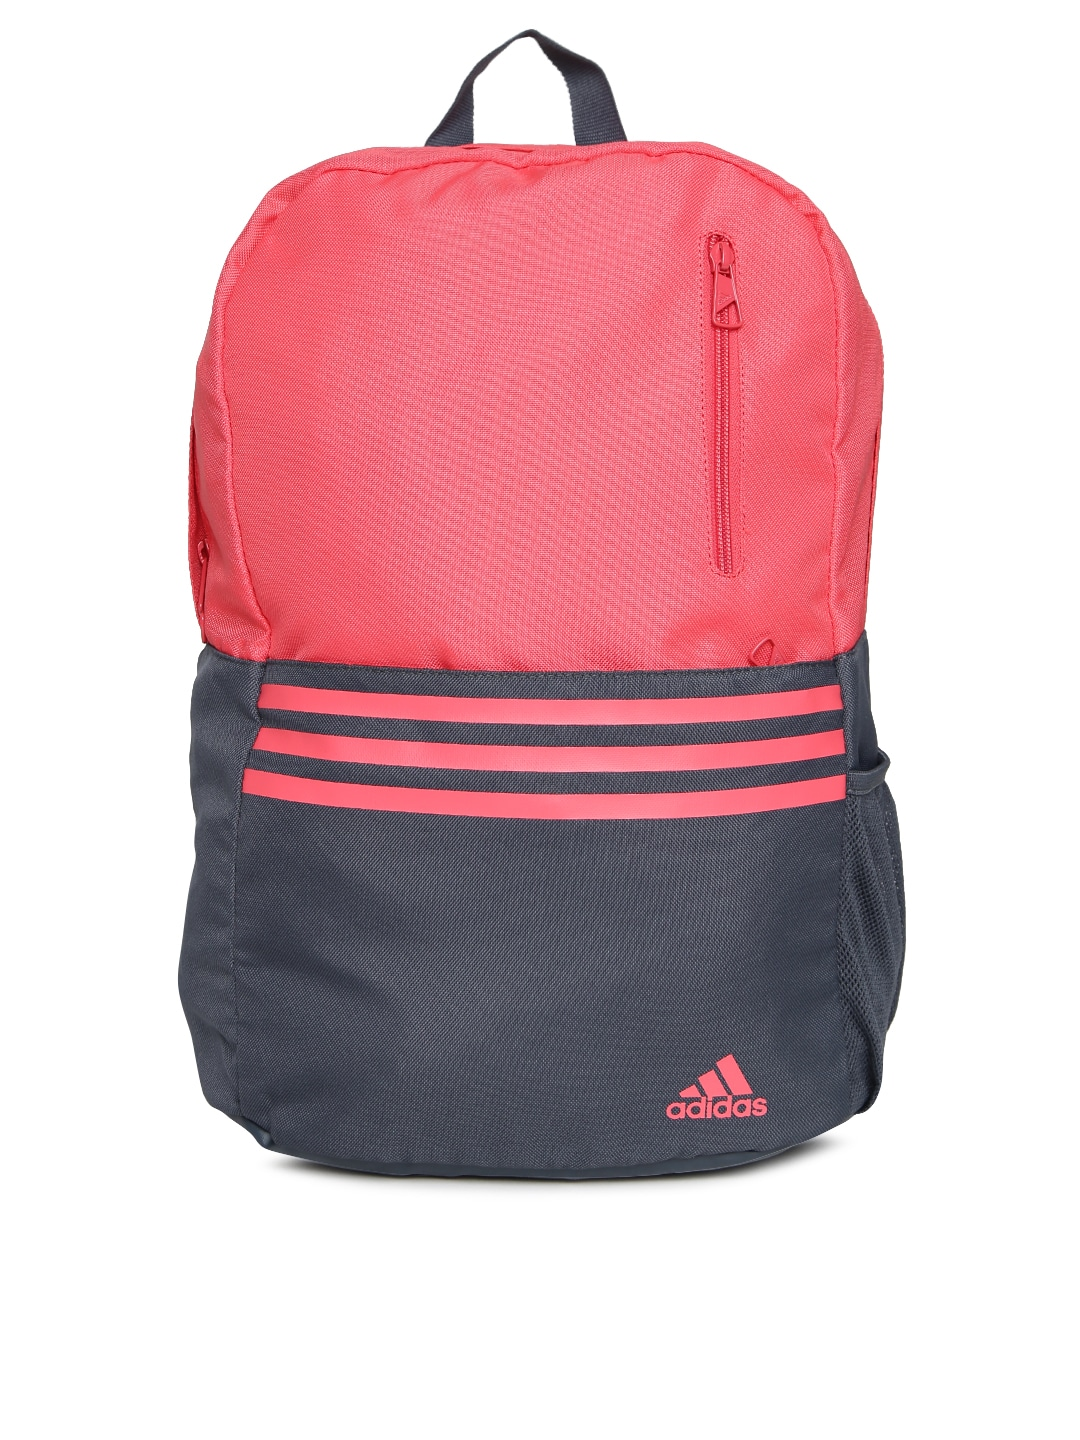 pink backpack adidas